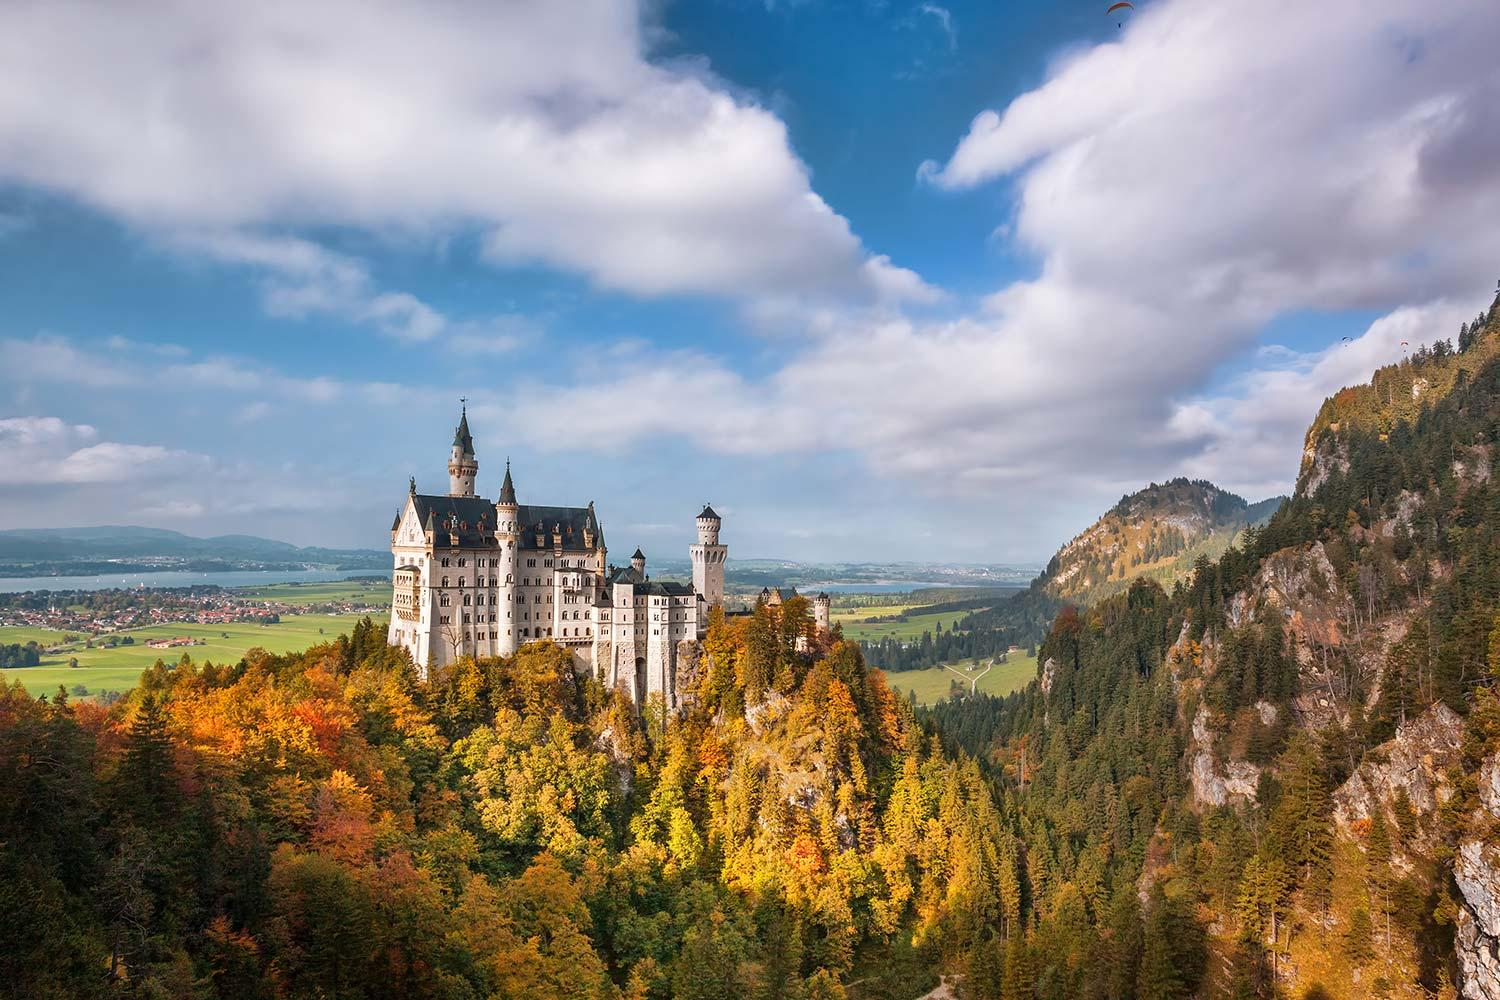 The King Ludwig Way self-guided walking tour (shown: Neuschwanstein Castle)